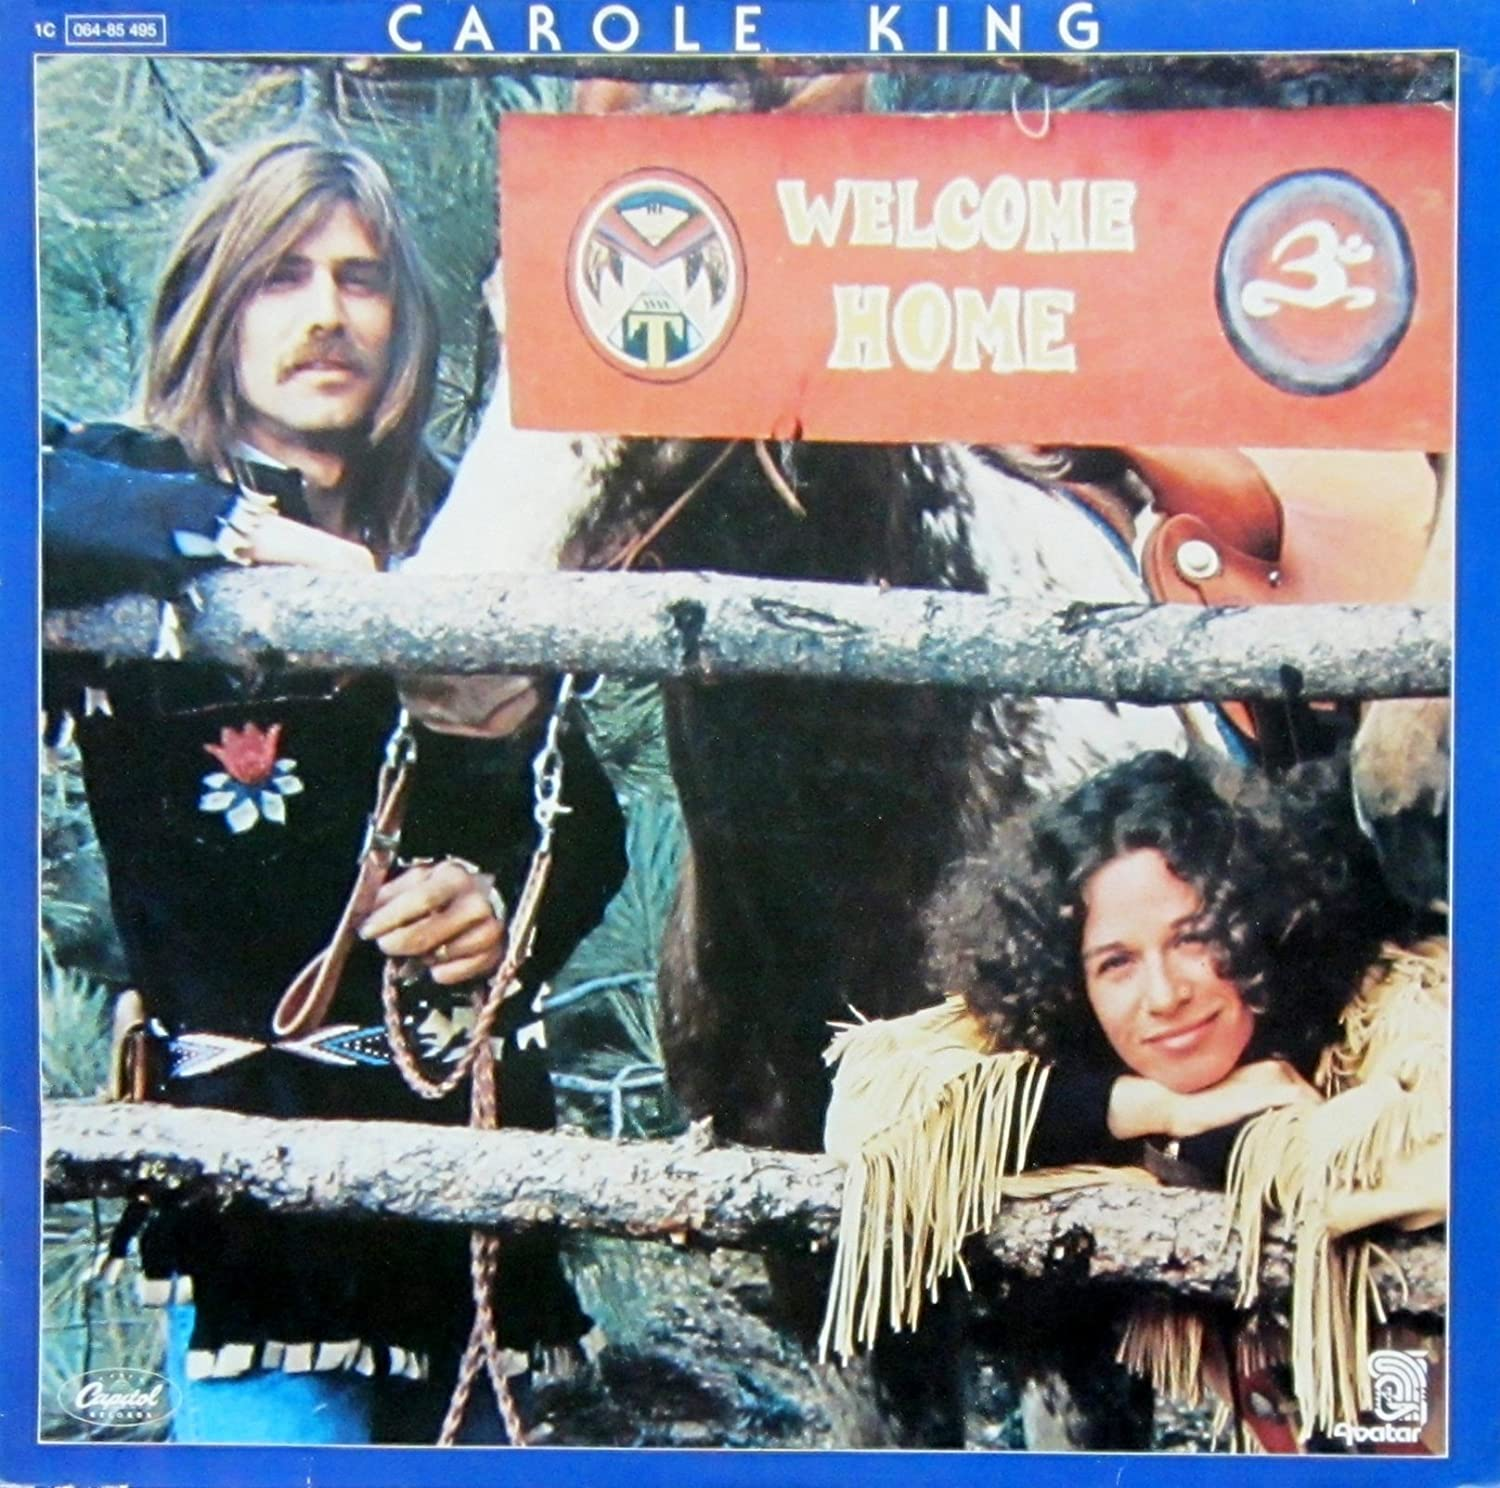 Carole King - Welcome Home - Avatar Records - 1C 064-85 495